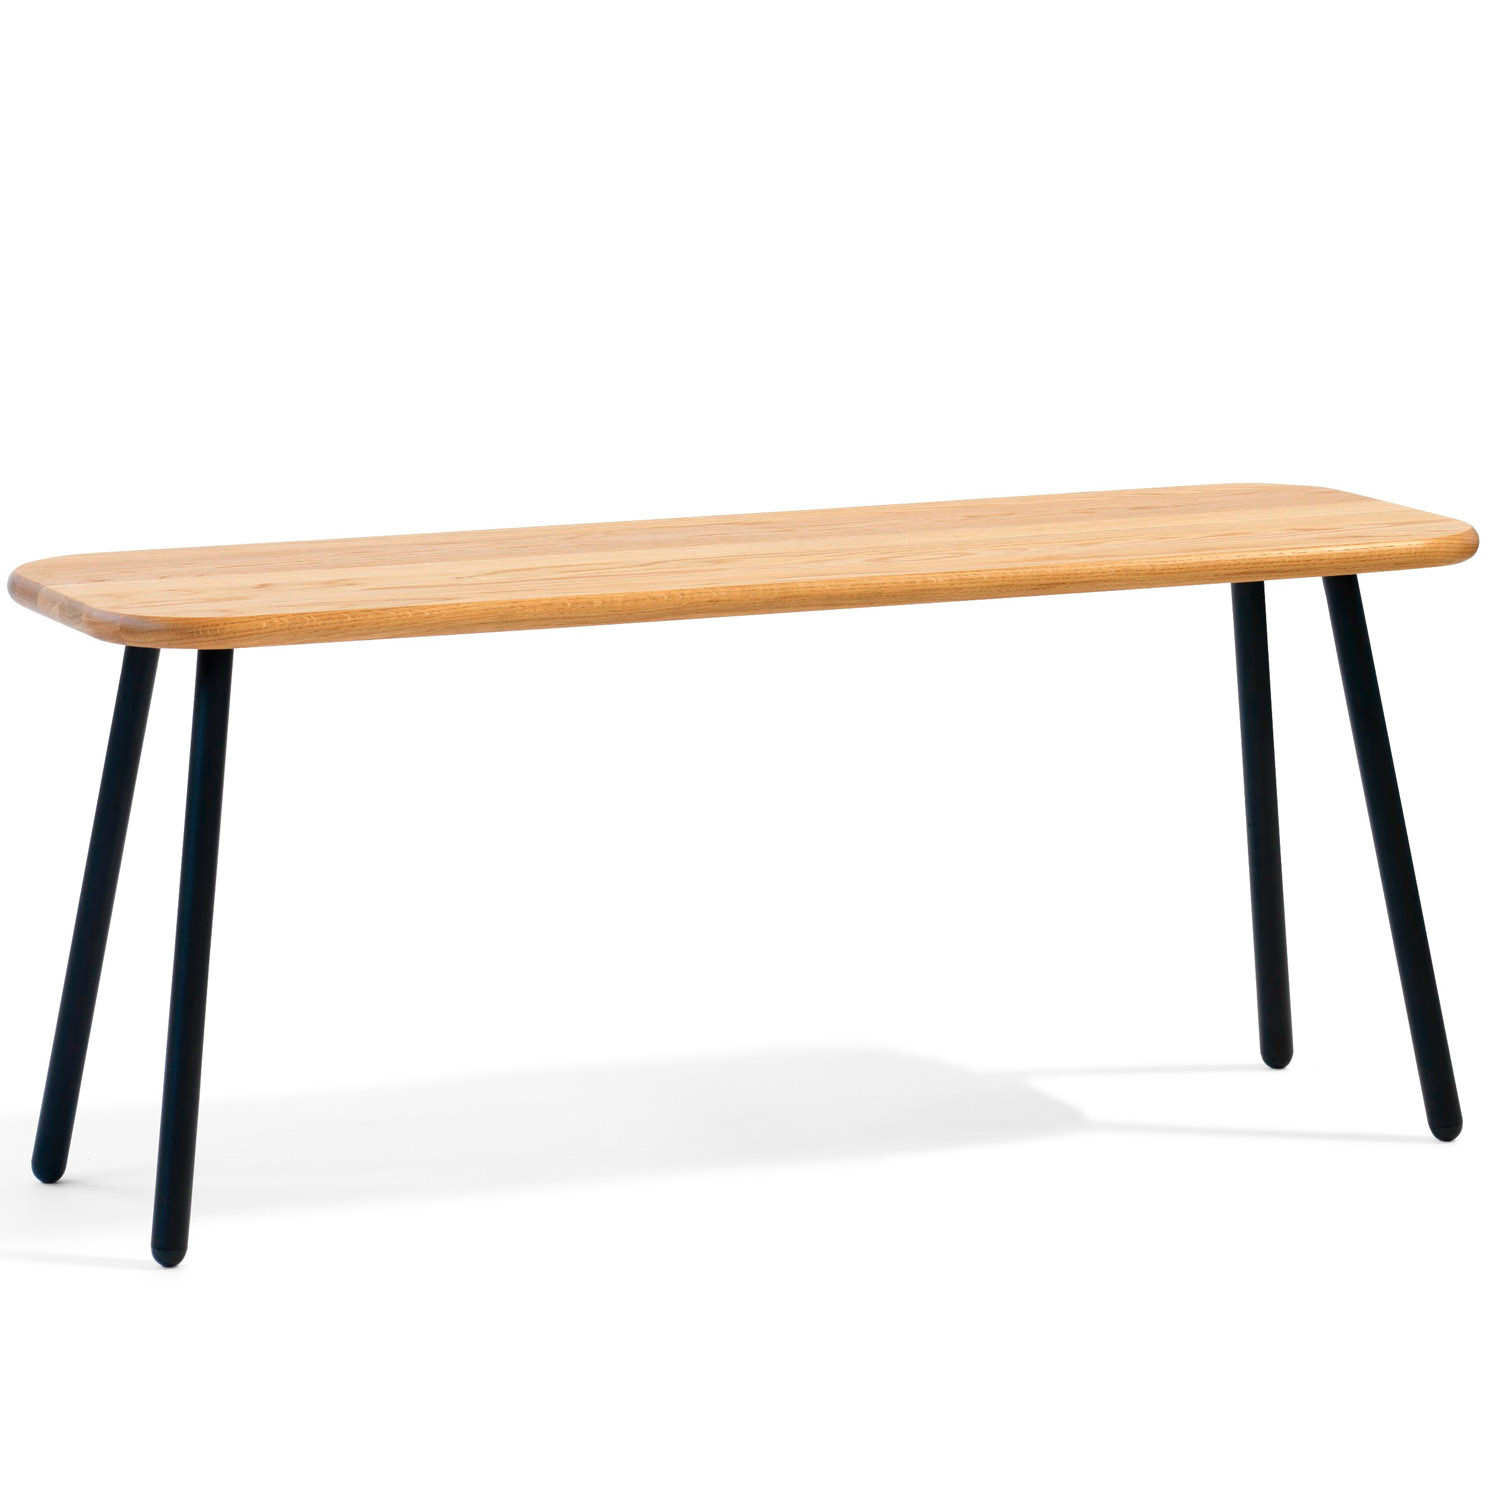 Kaffe Table from Thomas Bernstrand